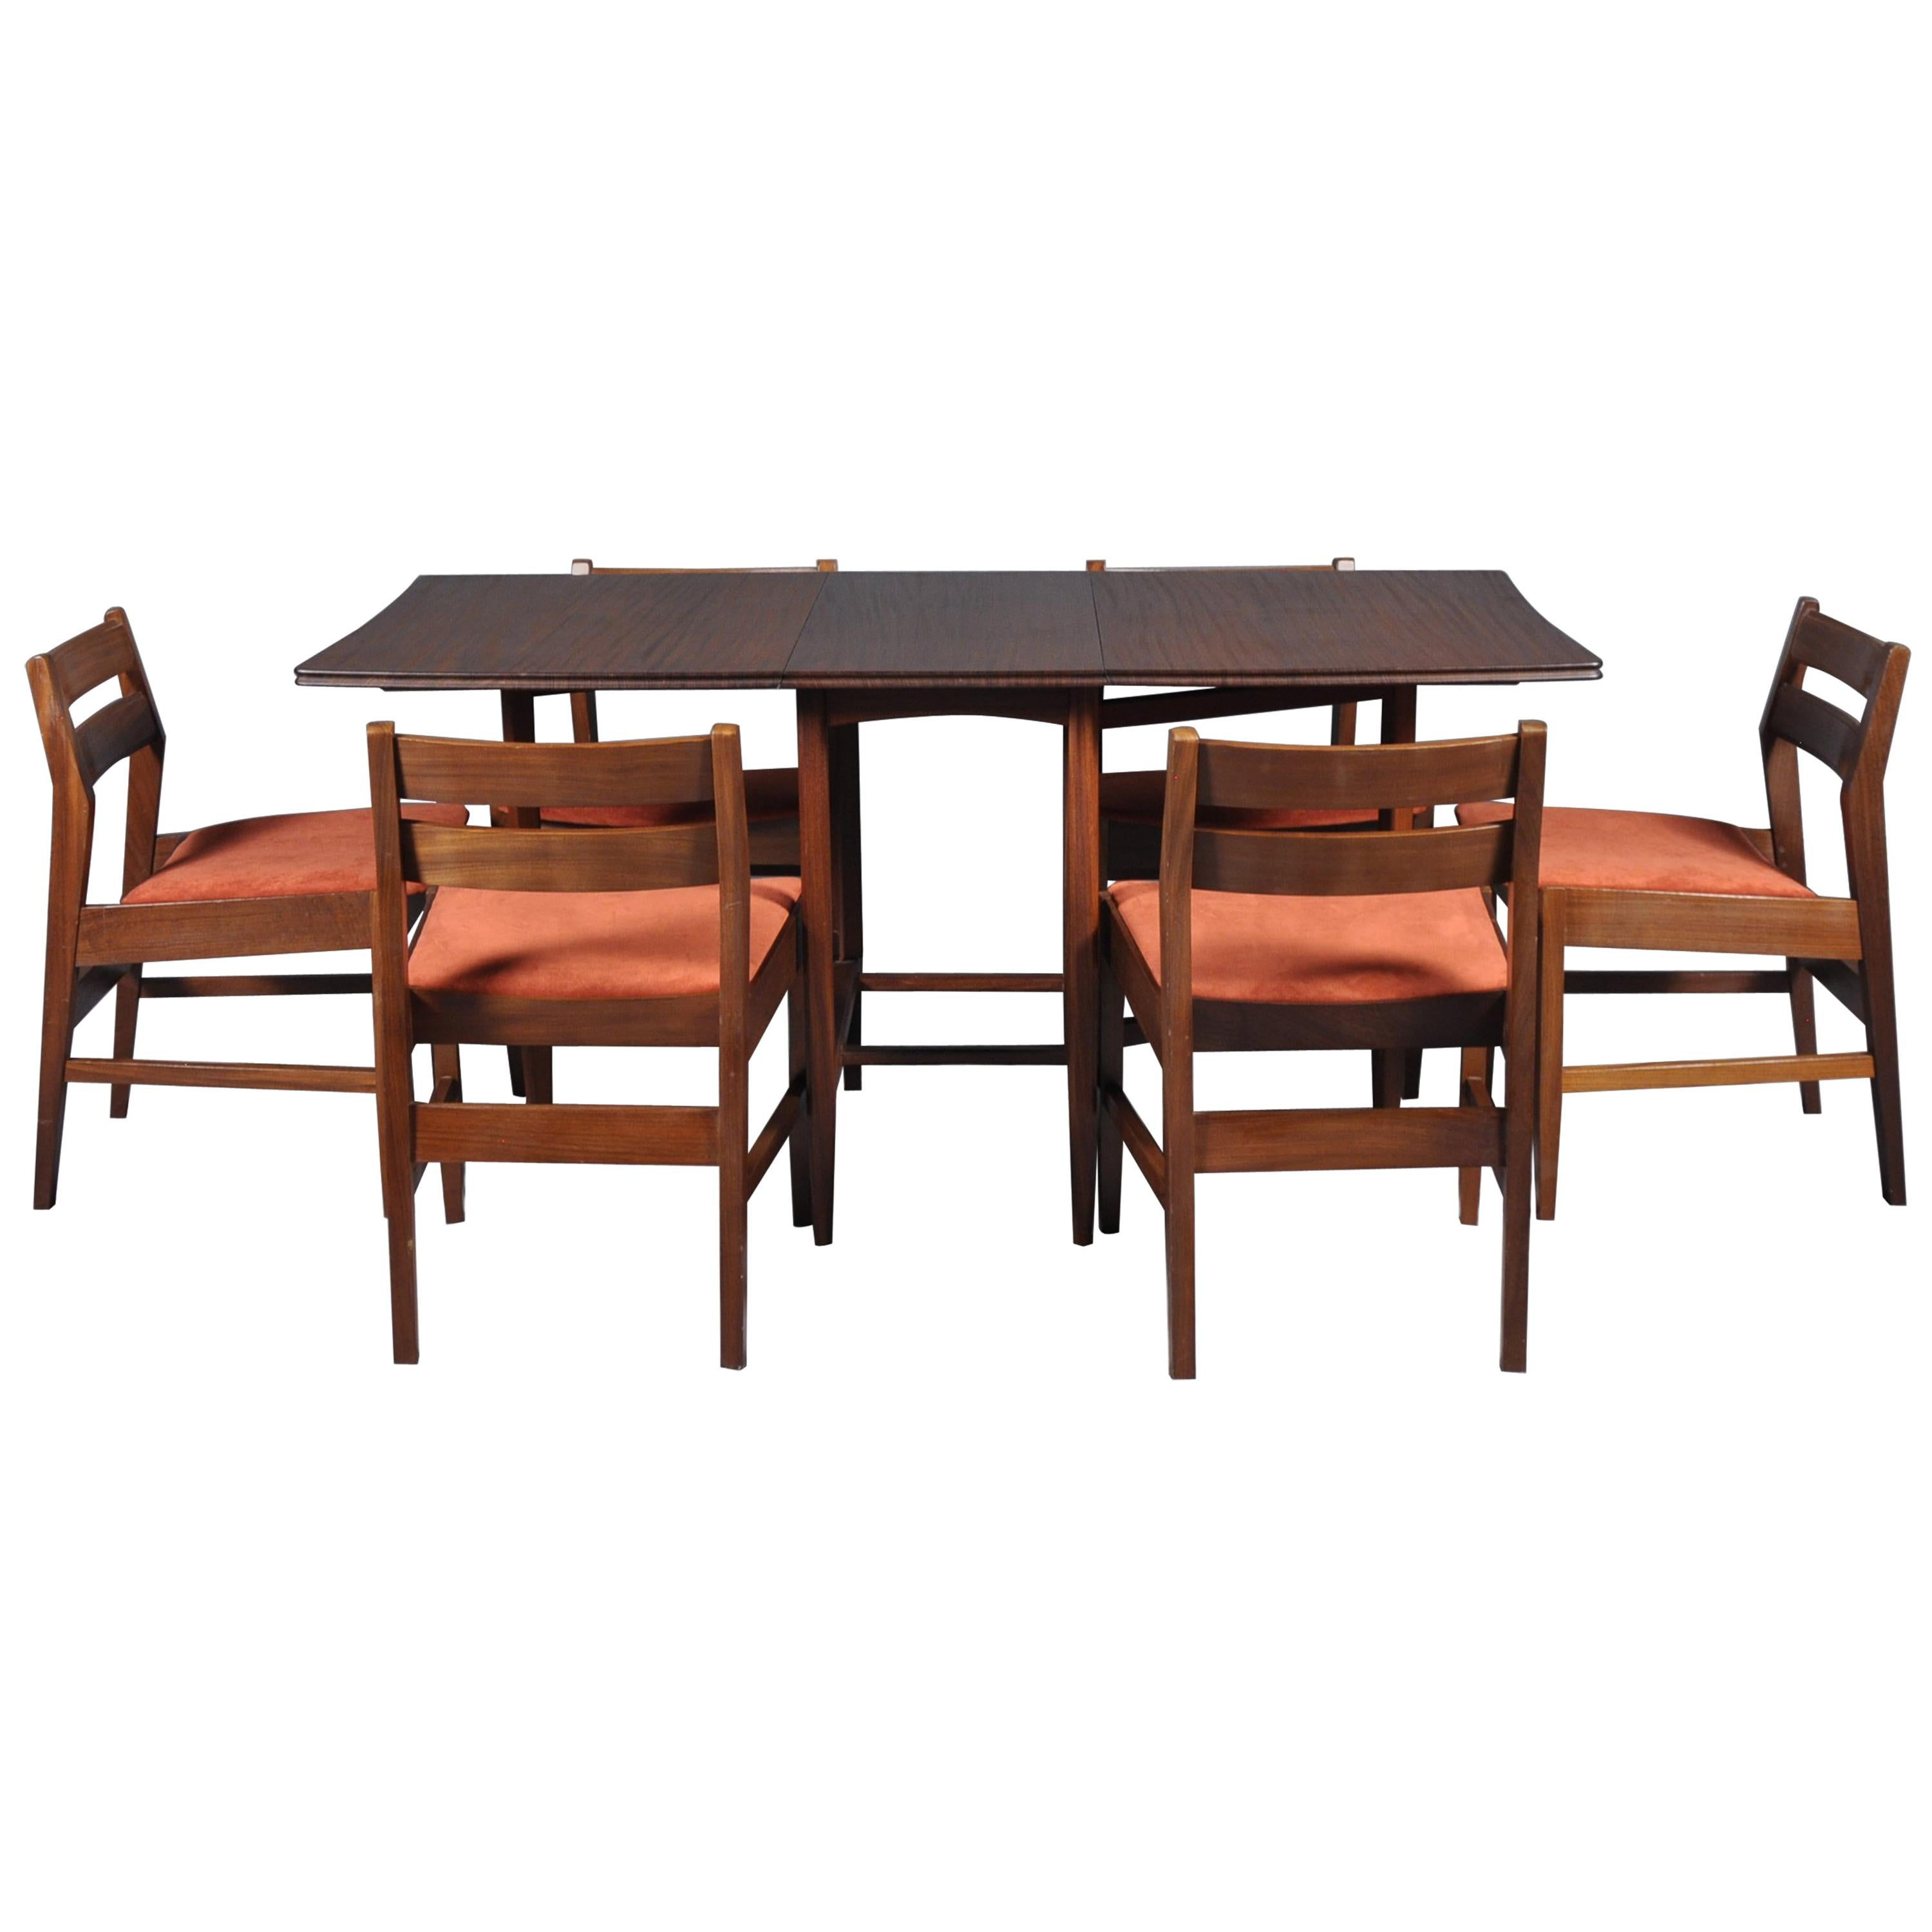 Ordinaire Mid Century Modern Set Folding Dining Table And Six Chairs, 1960s